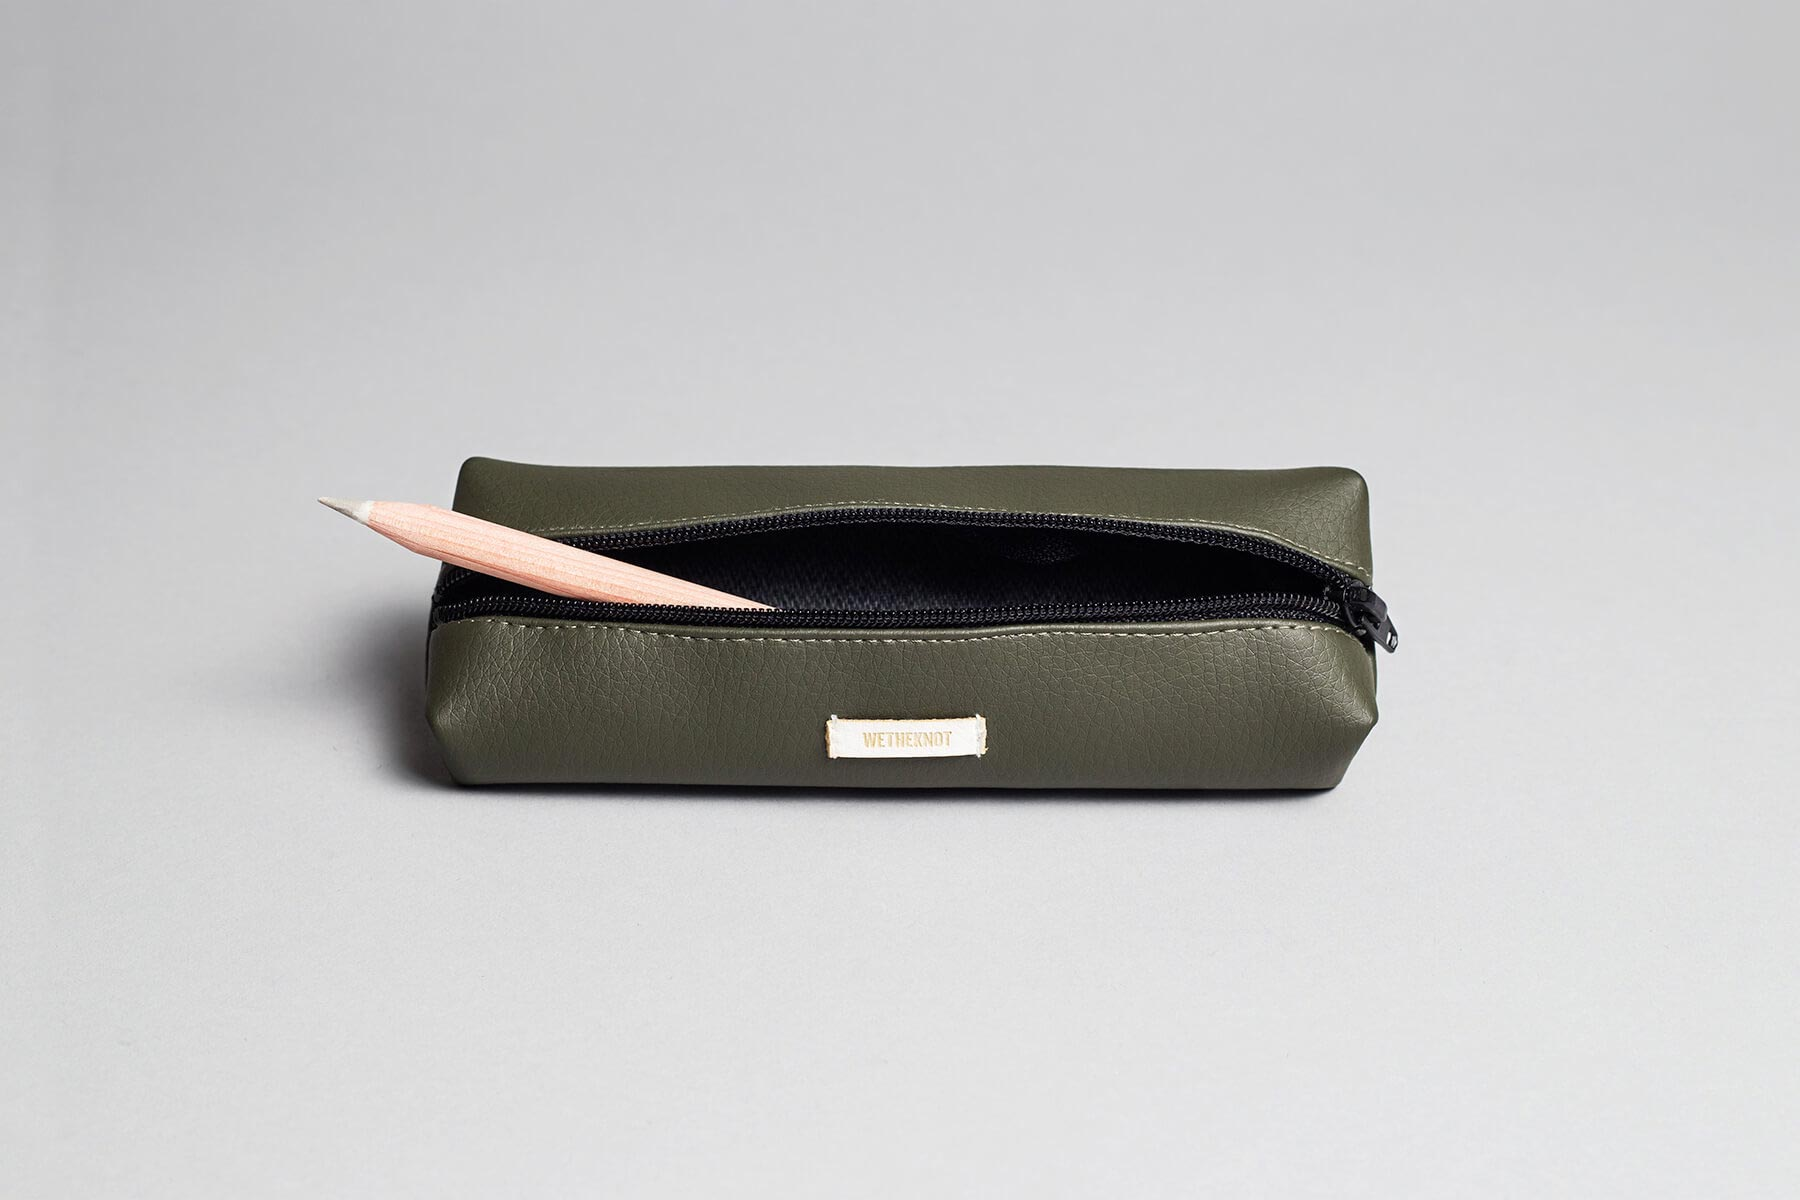 Vegan leather pencil case in olive green